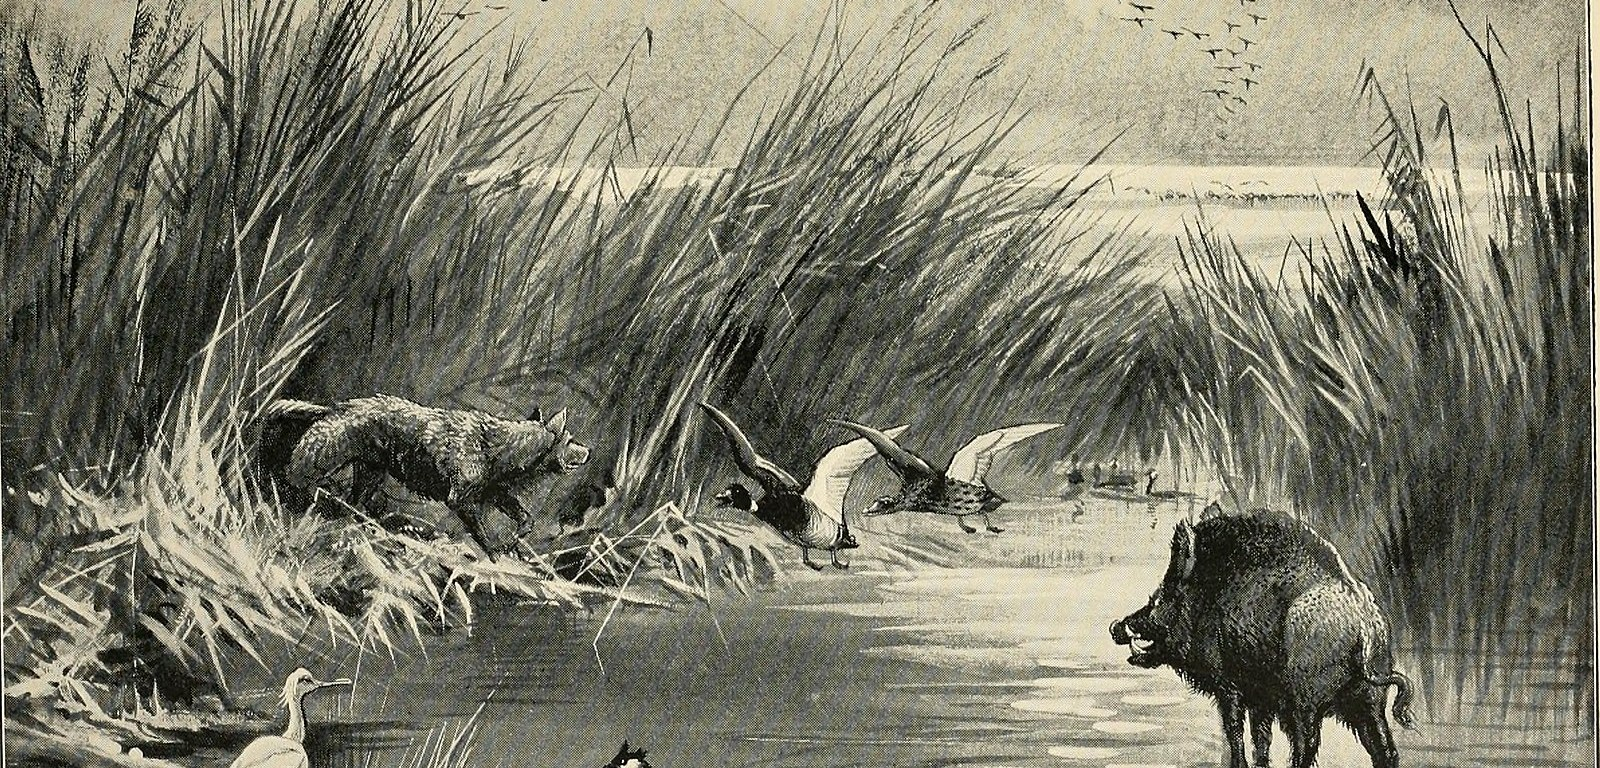 Lost and Vanishing Birds being a record of remarkable extinct species